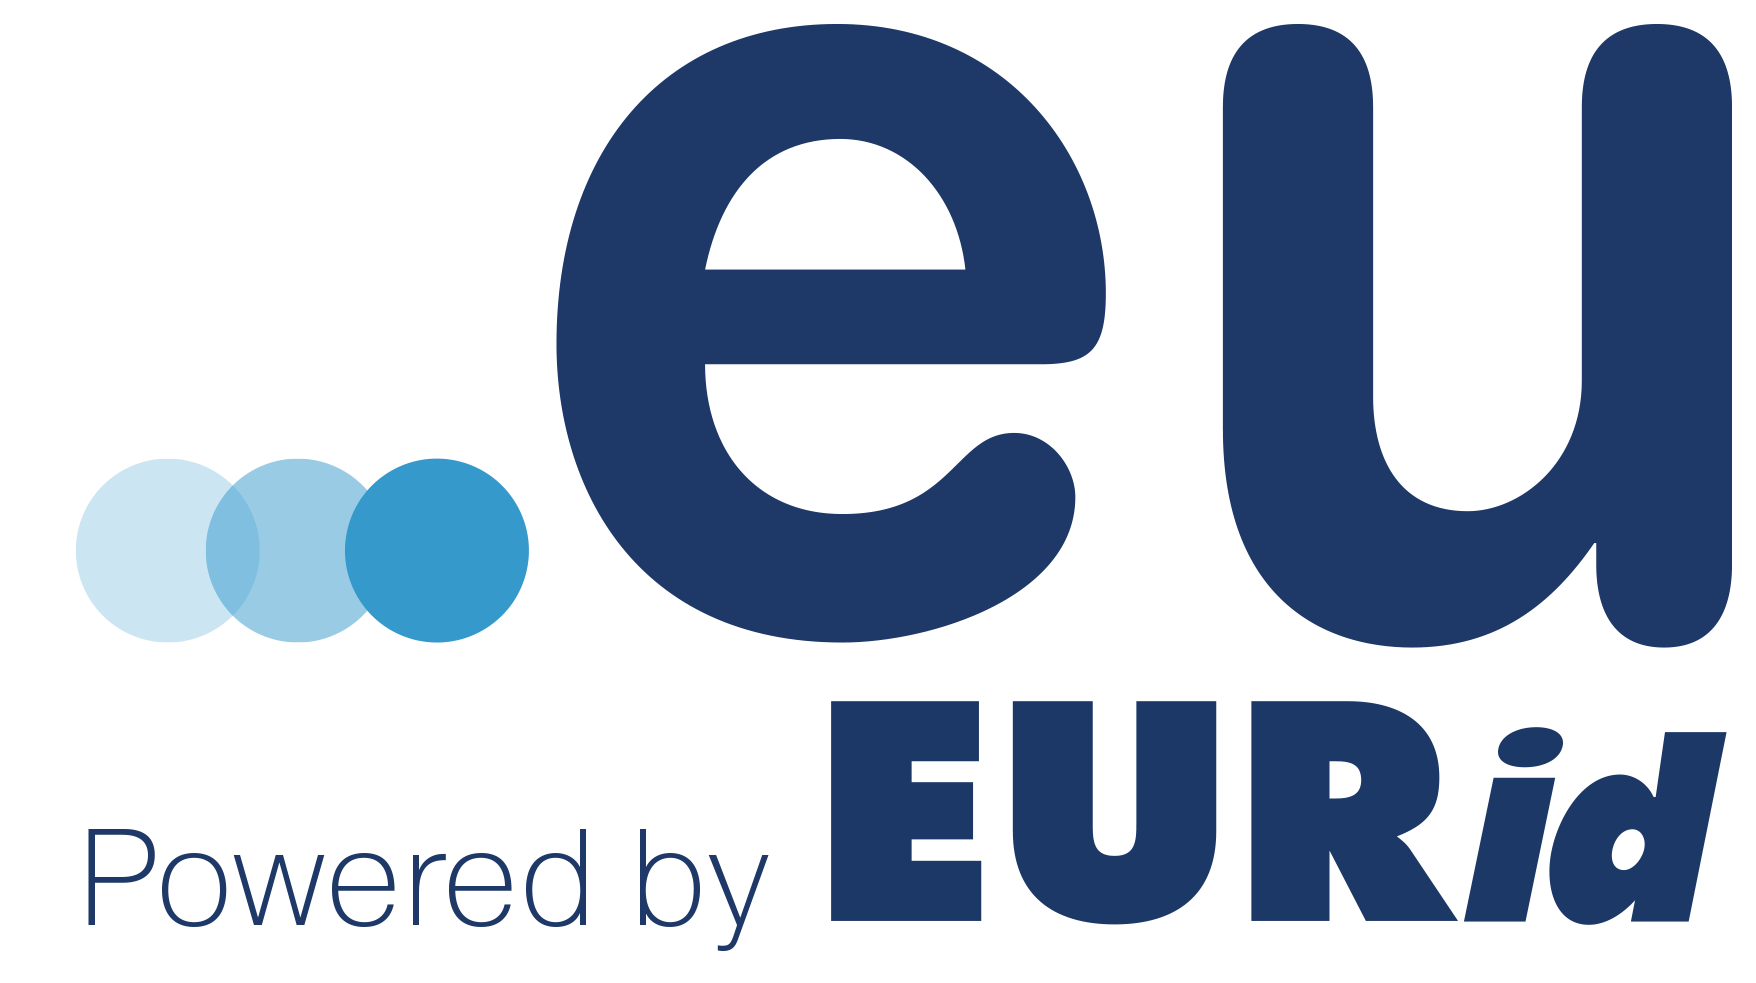 eu domain extension powered by EURid